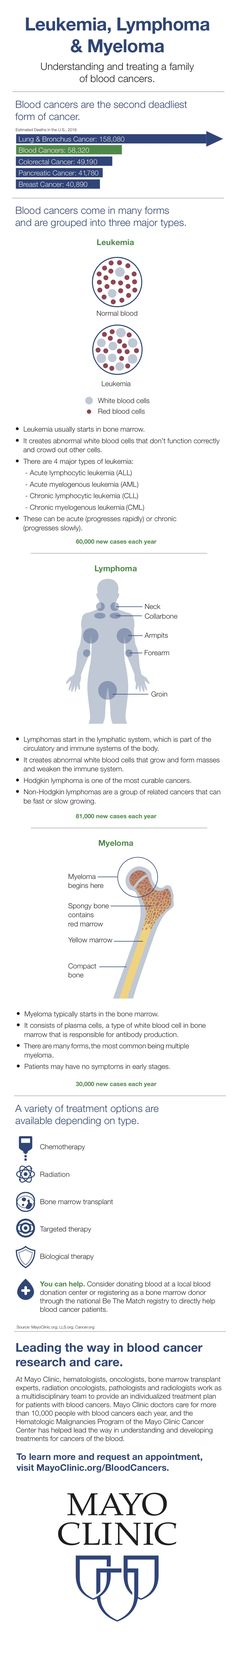 Learn more about leukemia, lymphoma and multiple myeloma.